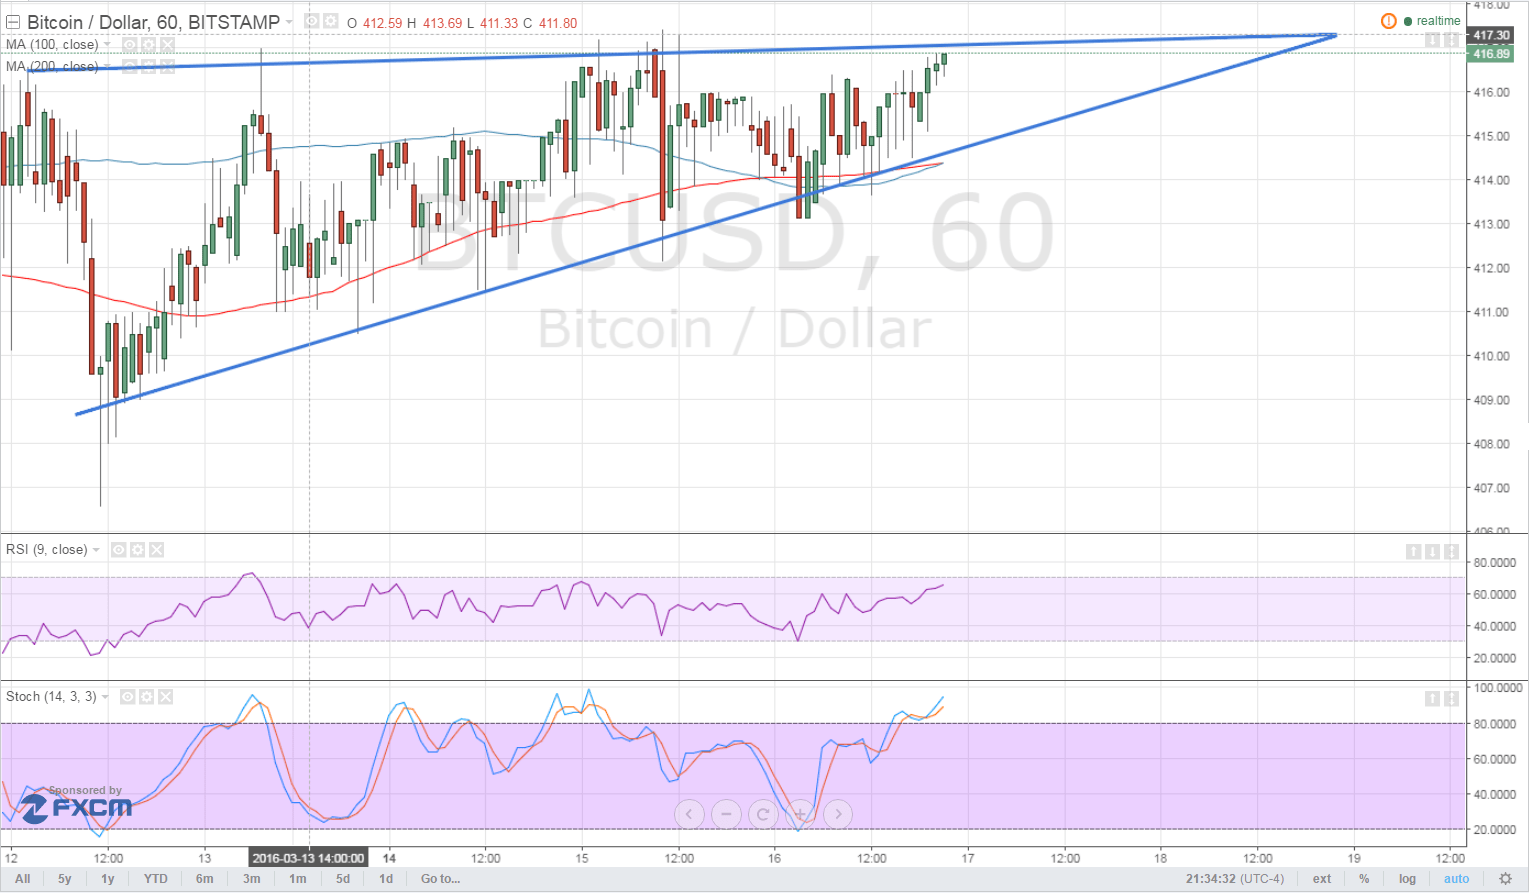 Bitcoin Price Technical Analysis for 03/17/2016 - Bulls Pressing On!